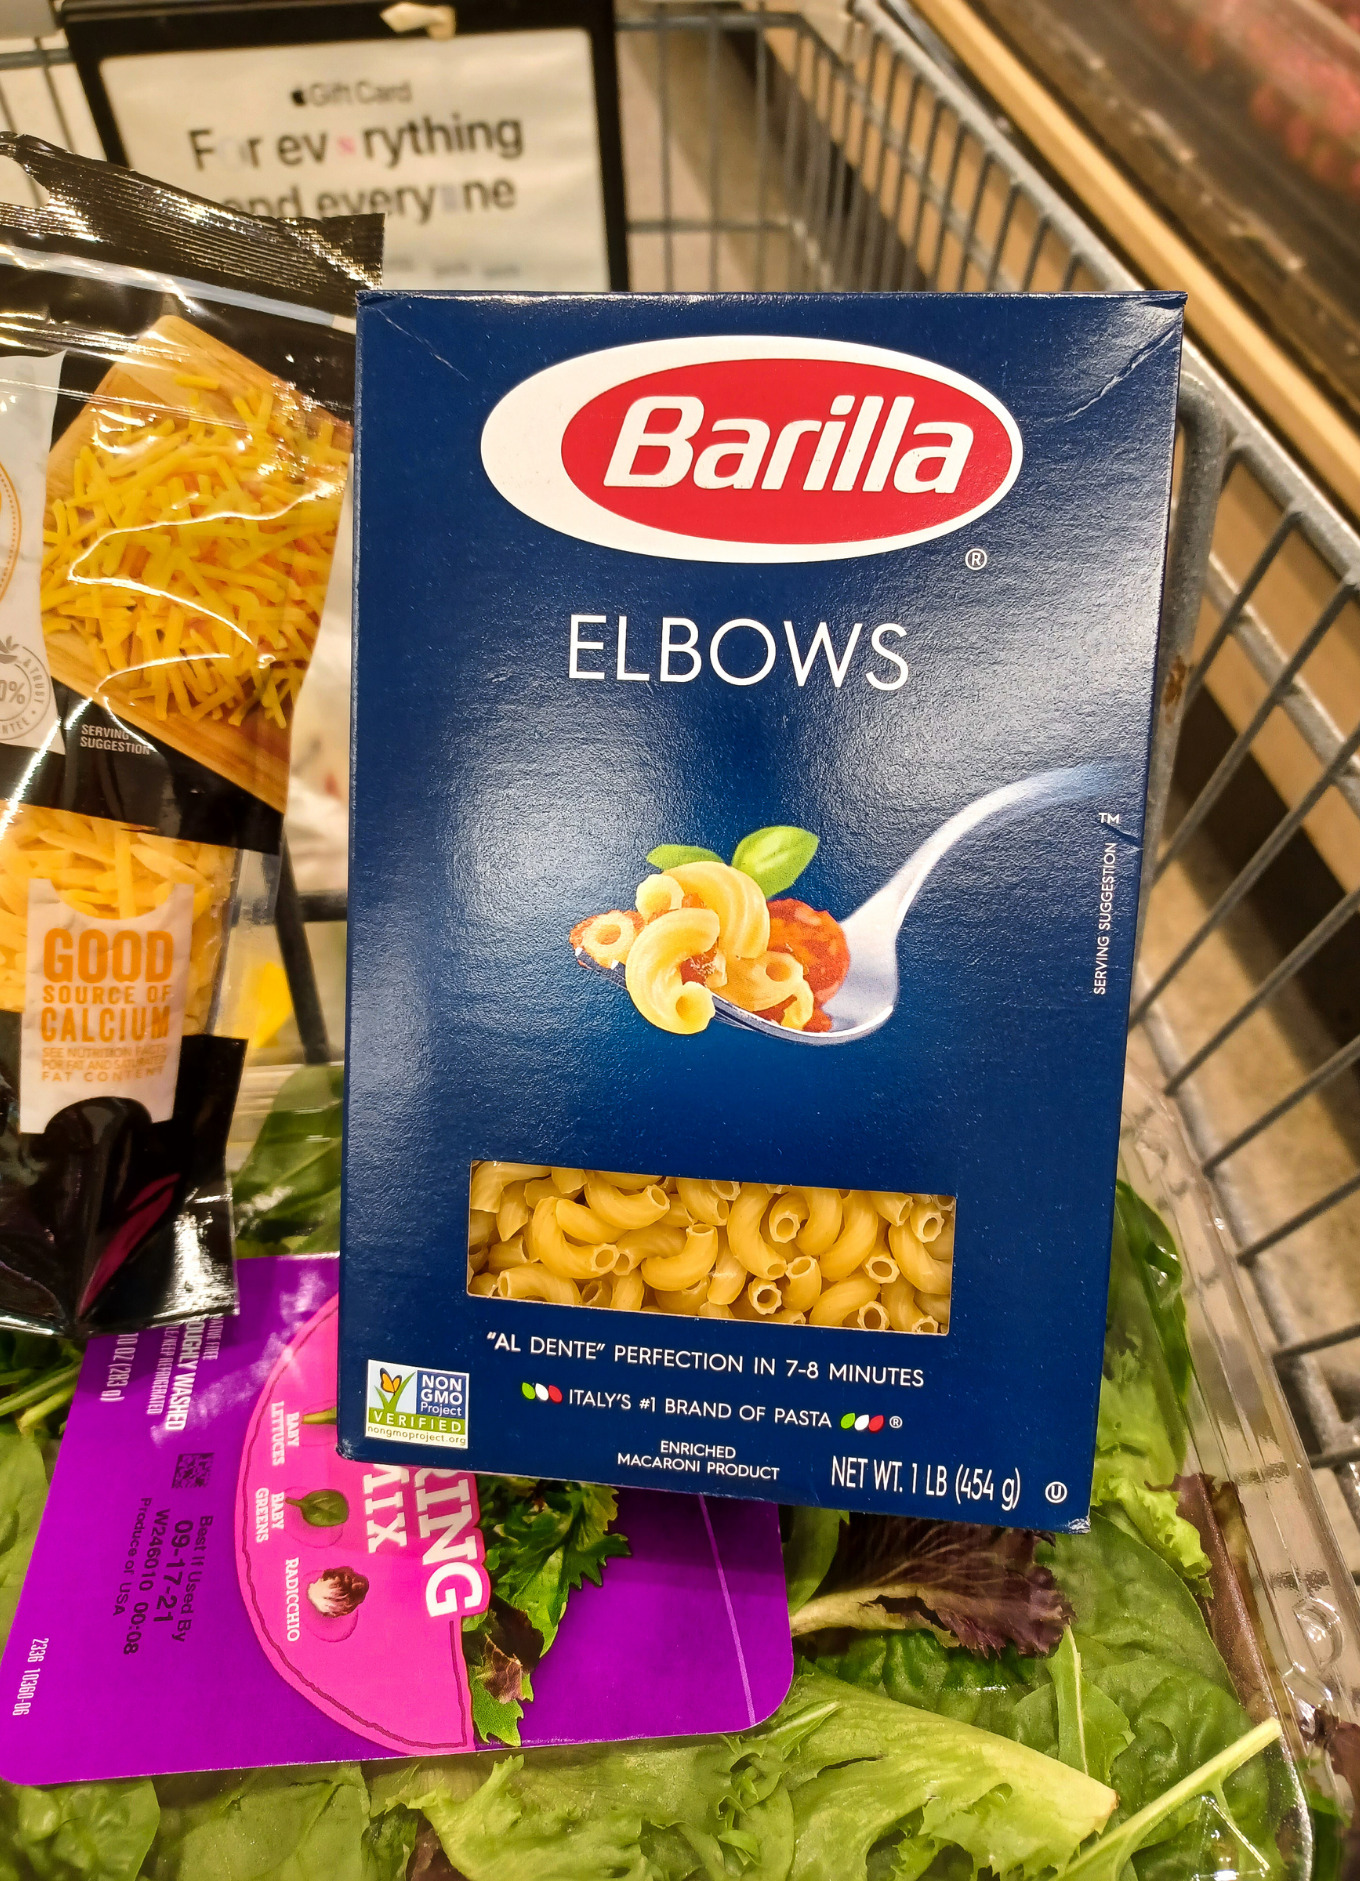 A box of Barilla elbow macaroni in a grocery cart